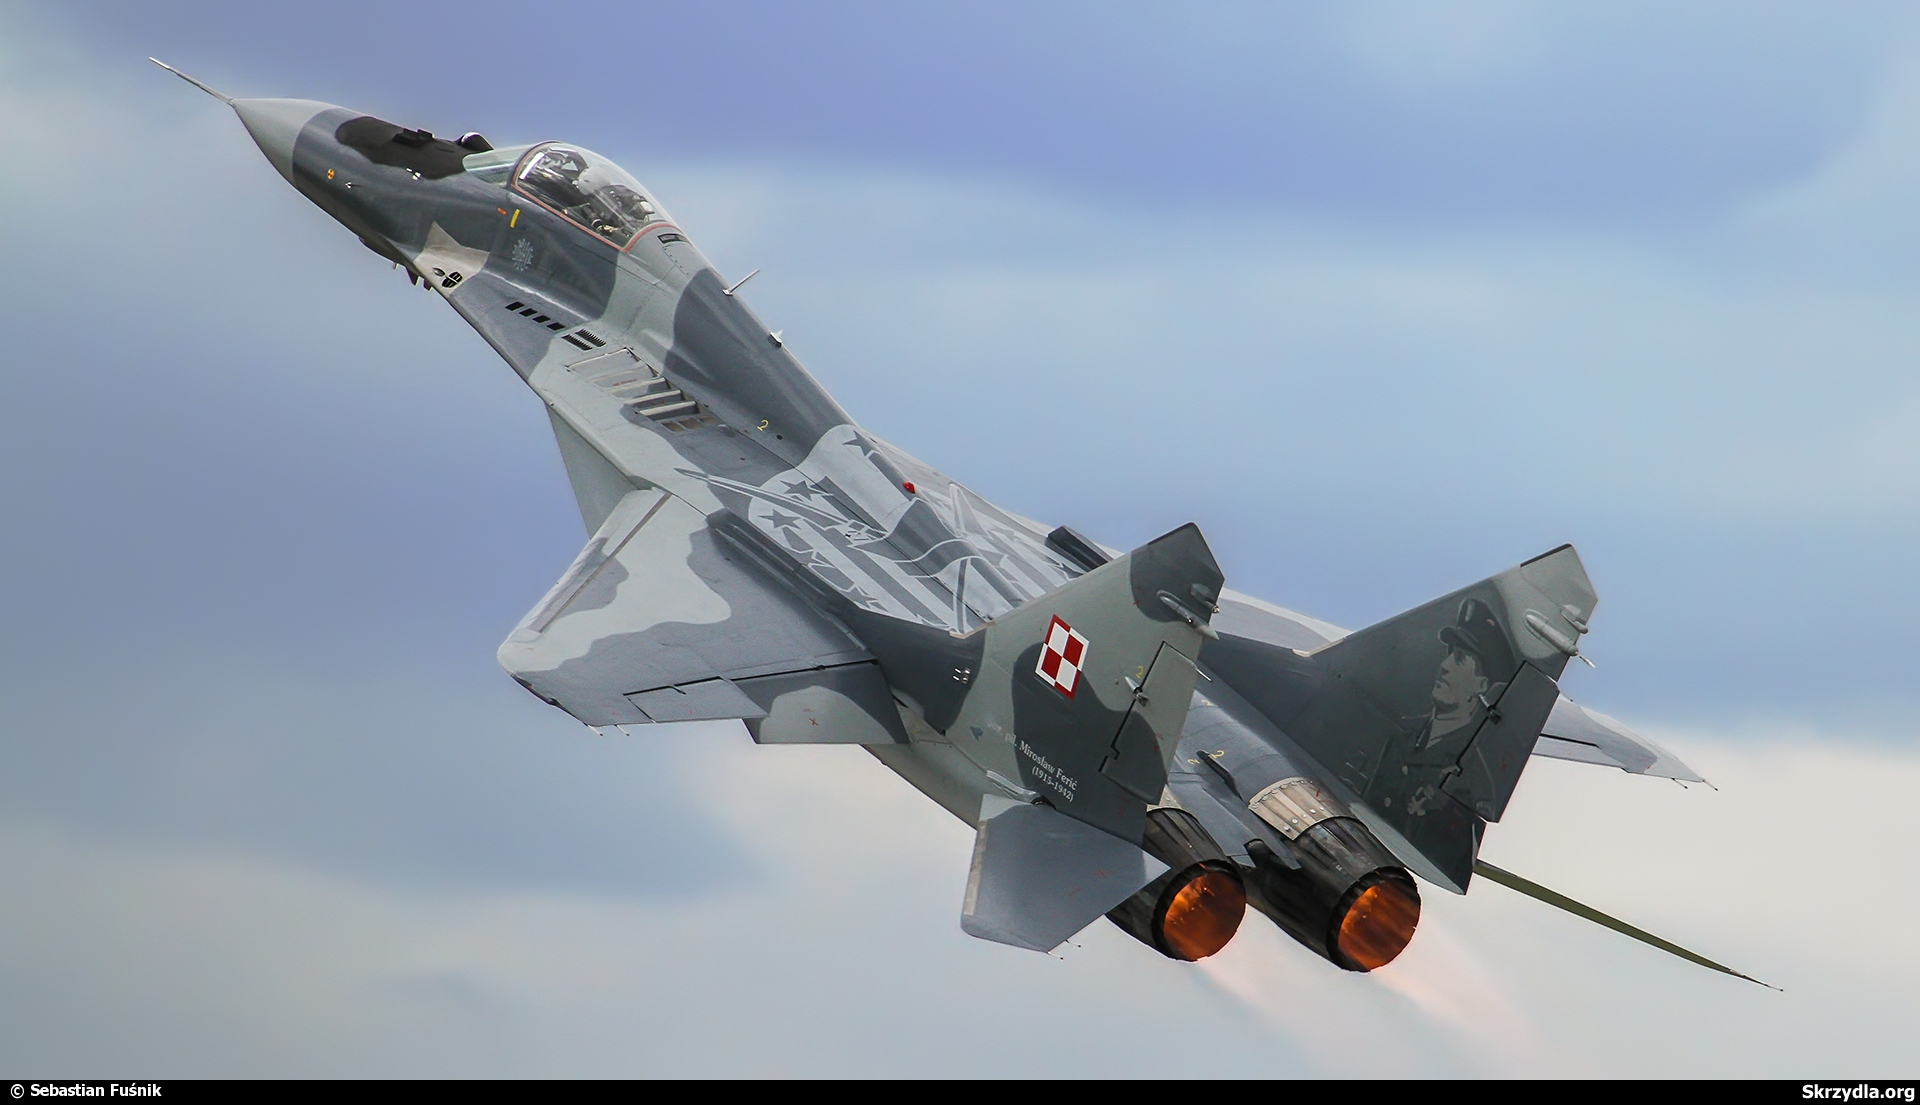 http://militaryrussia.ru/forum/download/file.php?id=24087&sid=c45d5e7ec5ff2c177c32e317bf3b984f&mode=view